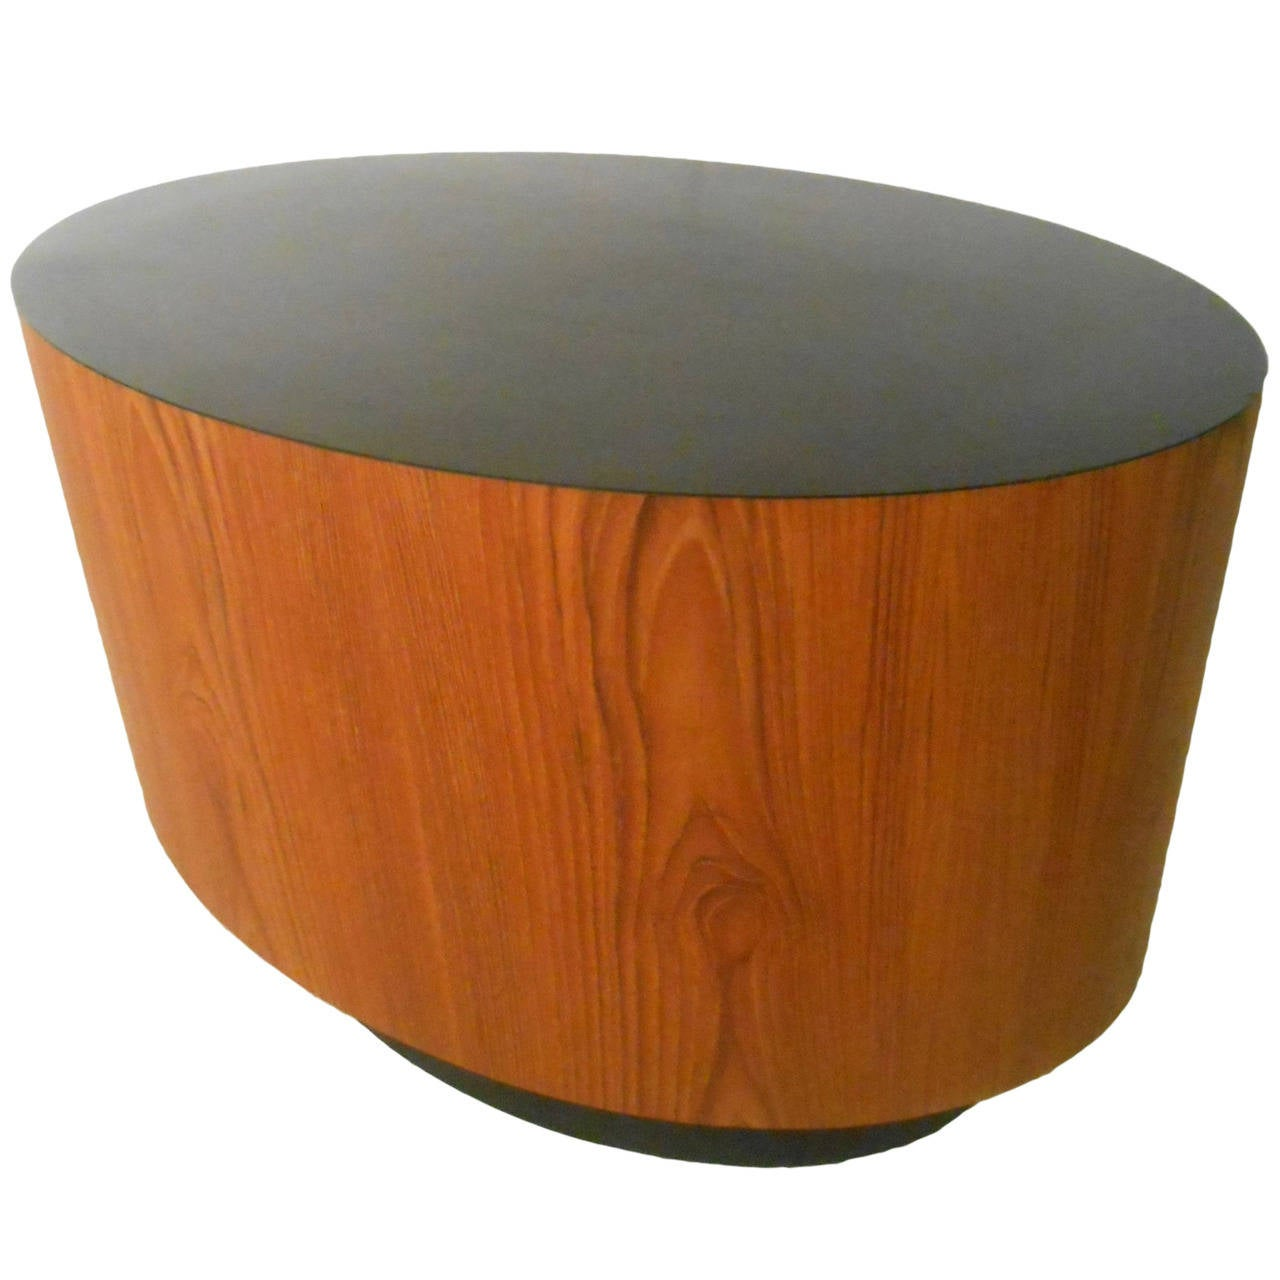 Unique Mid-Century Modern Adrian Pearsall Style Side Table